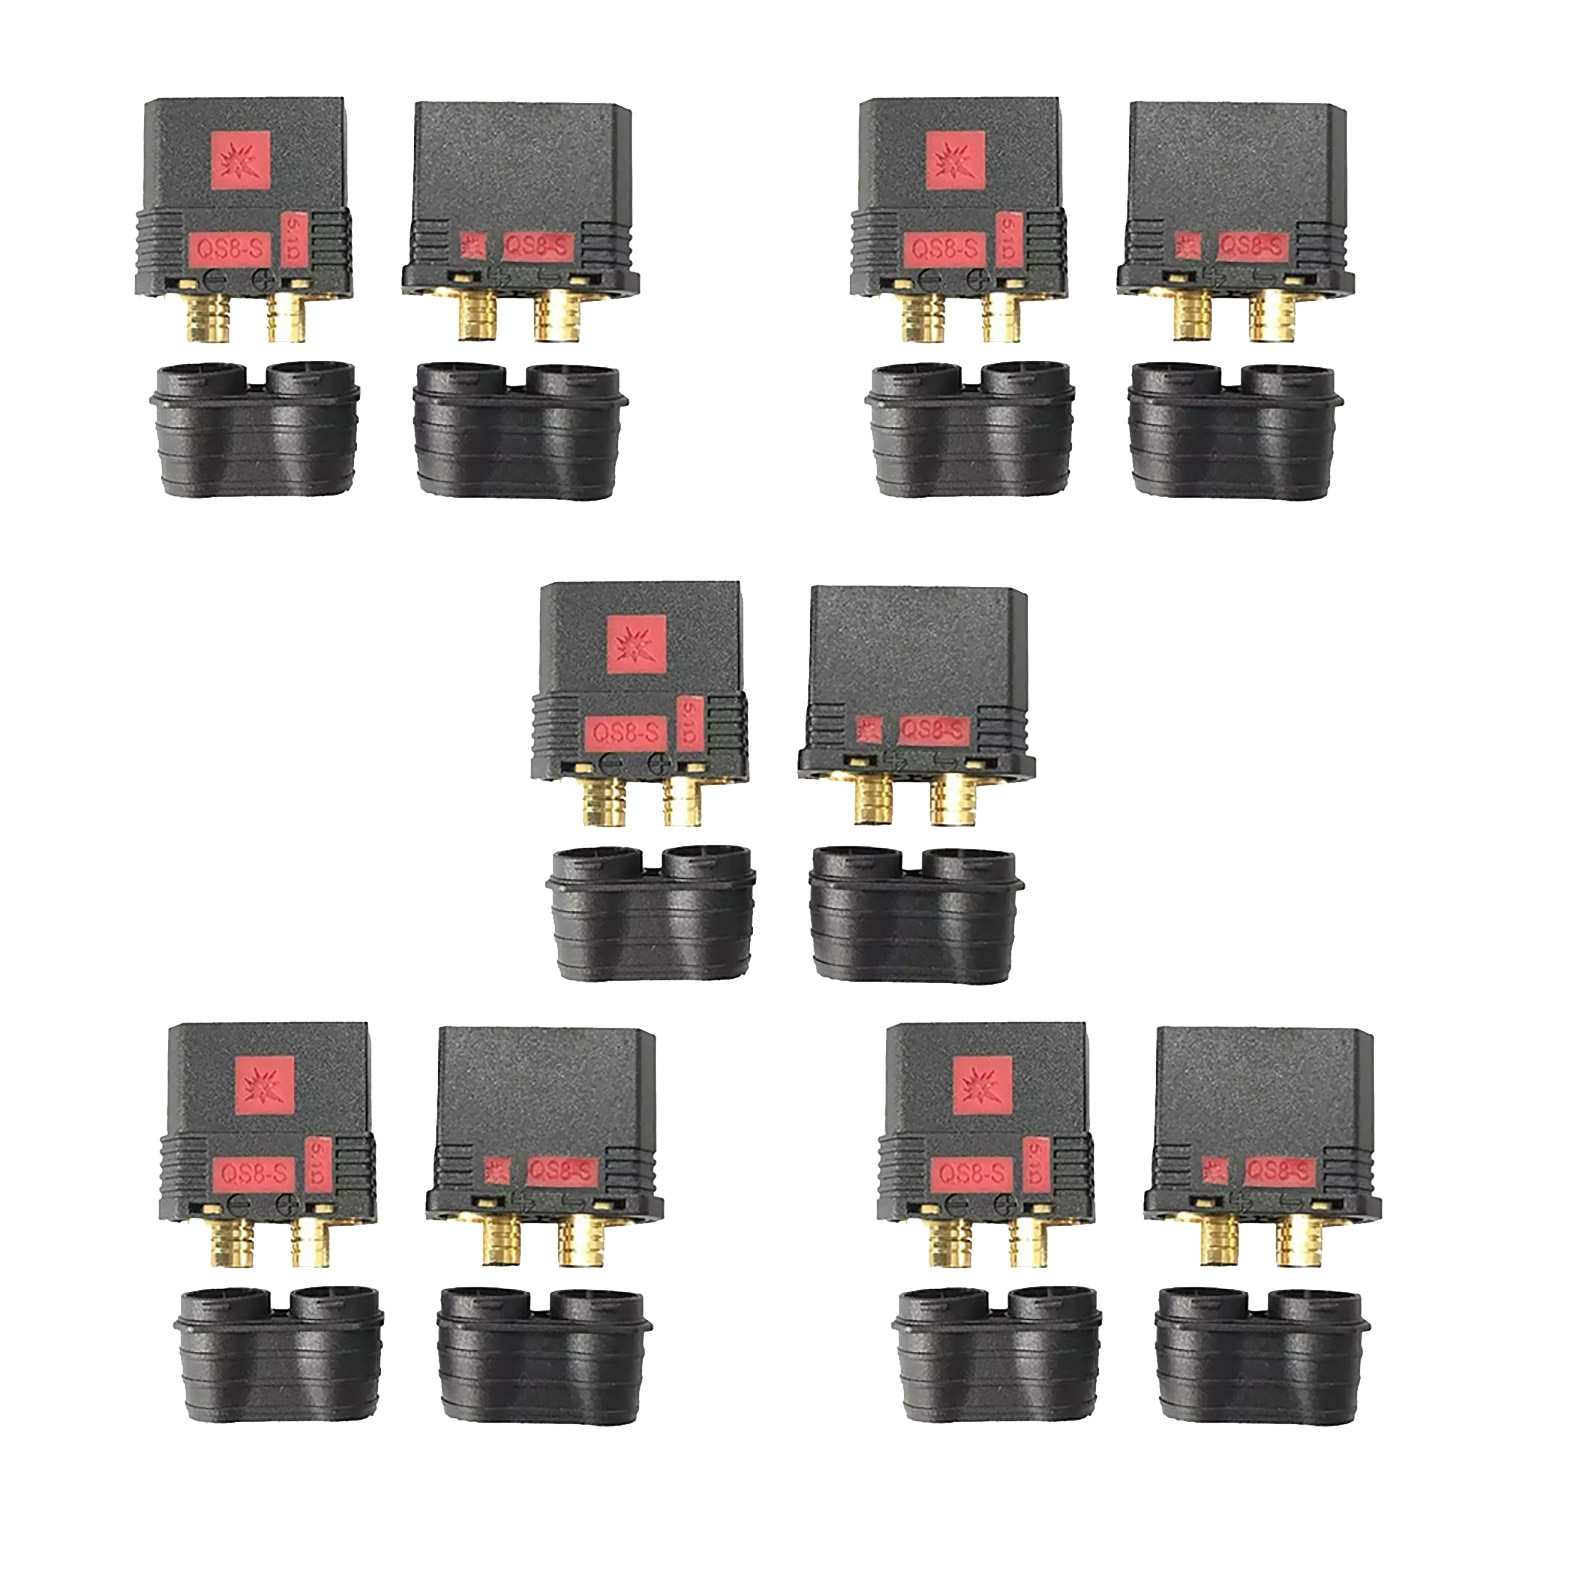 2/5pair QS8-S Heavy Duty Battery Connector Anti-Spark Gold Connector Large Power Plug for RC Plant protection drone Car Model